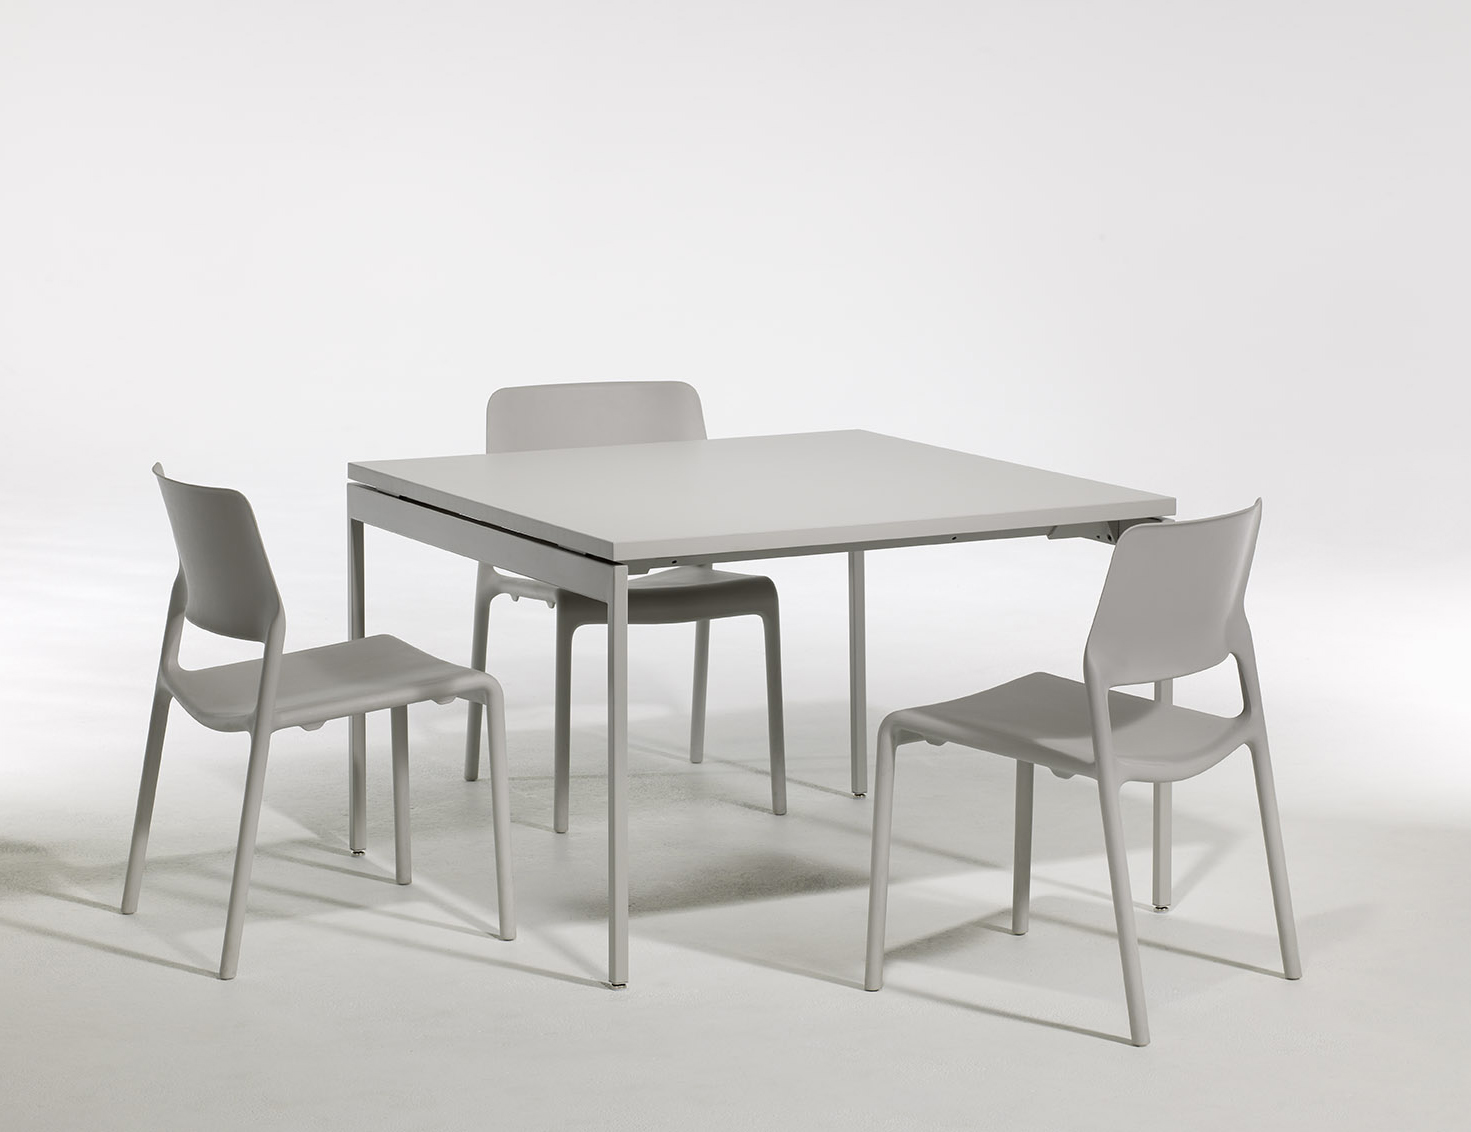 Knoll Table Antenna Tables And Desks Knoll